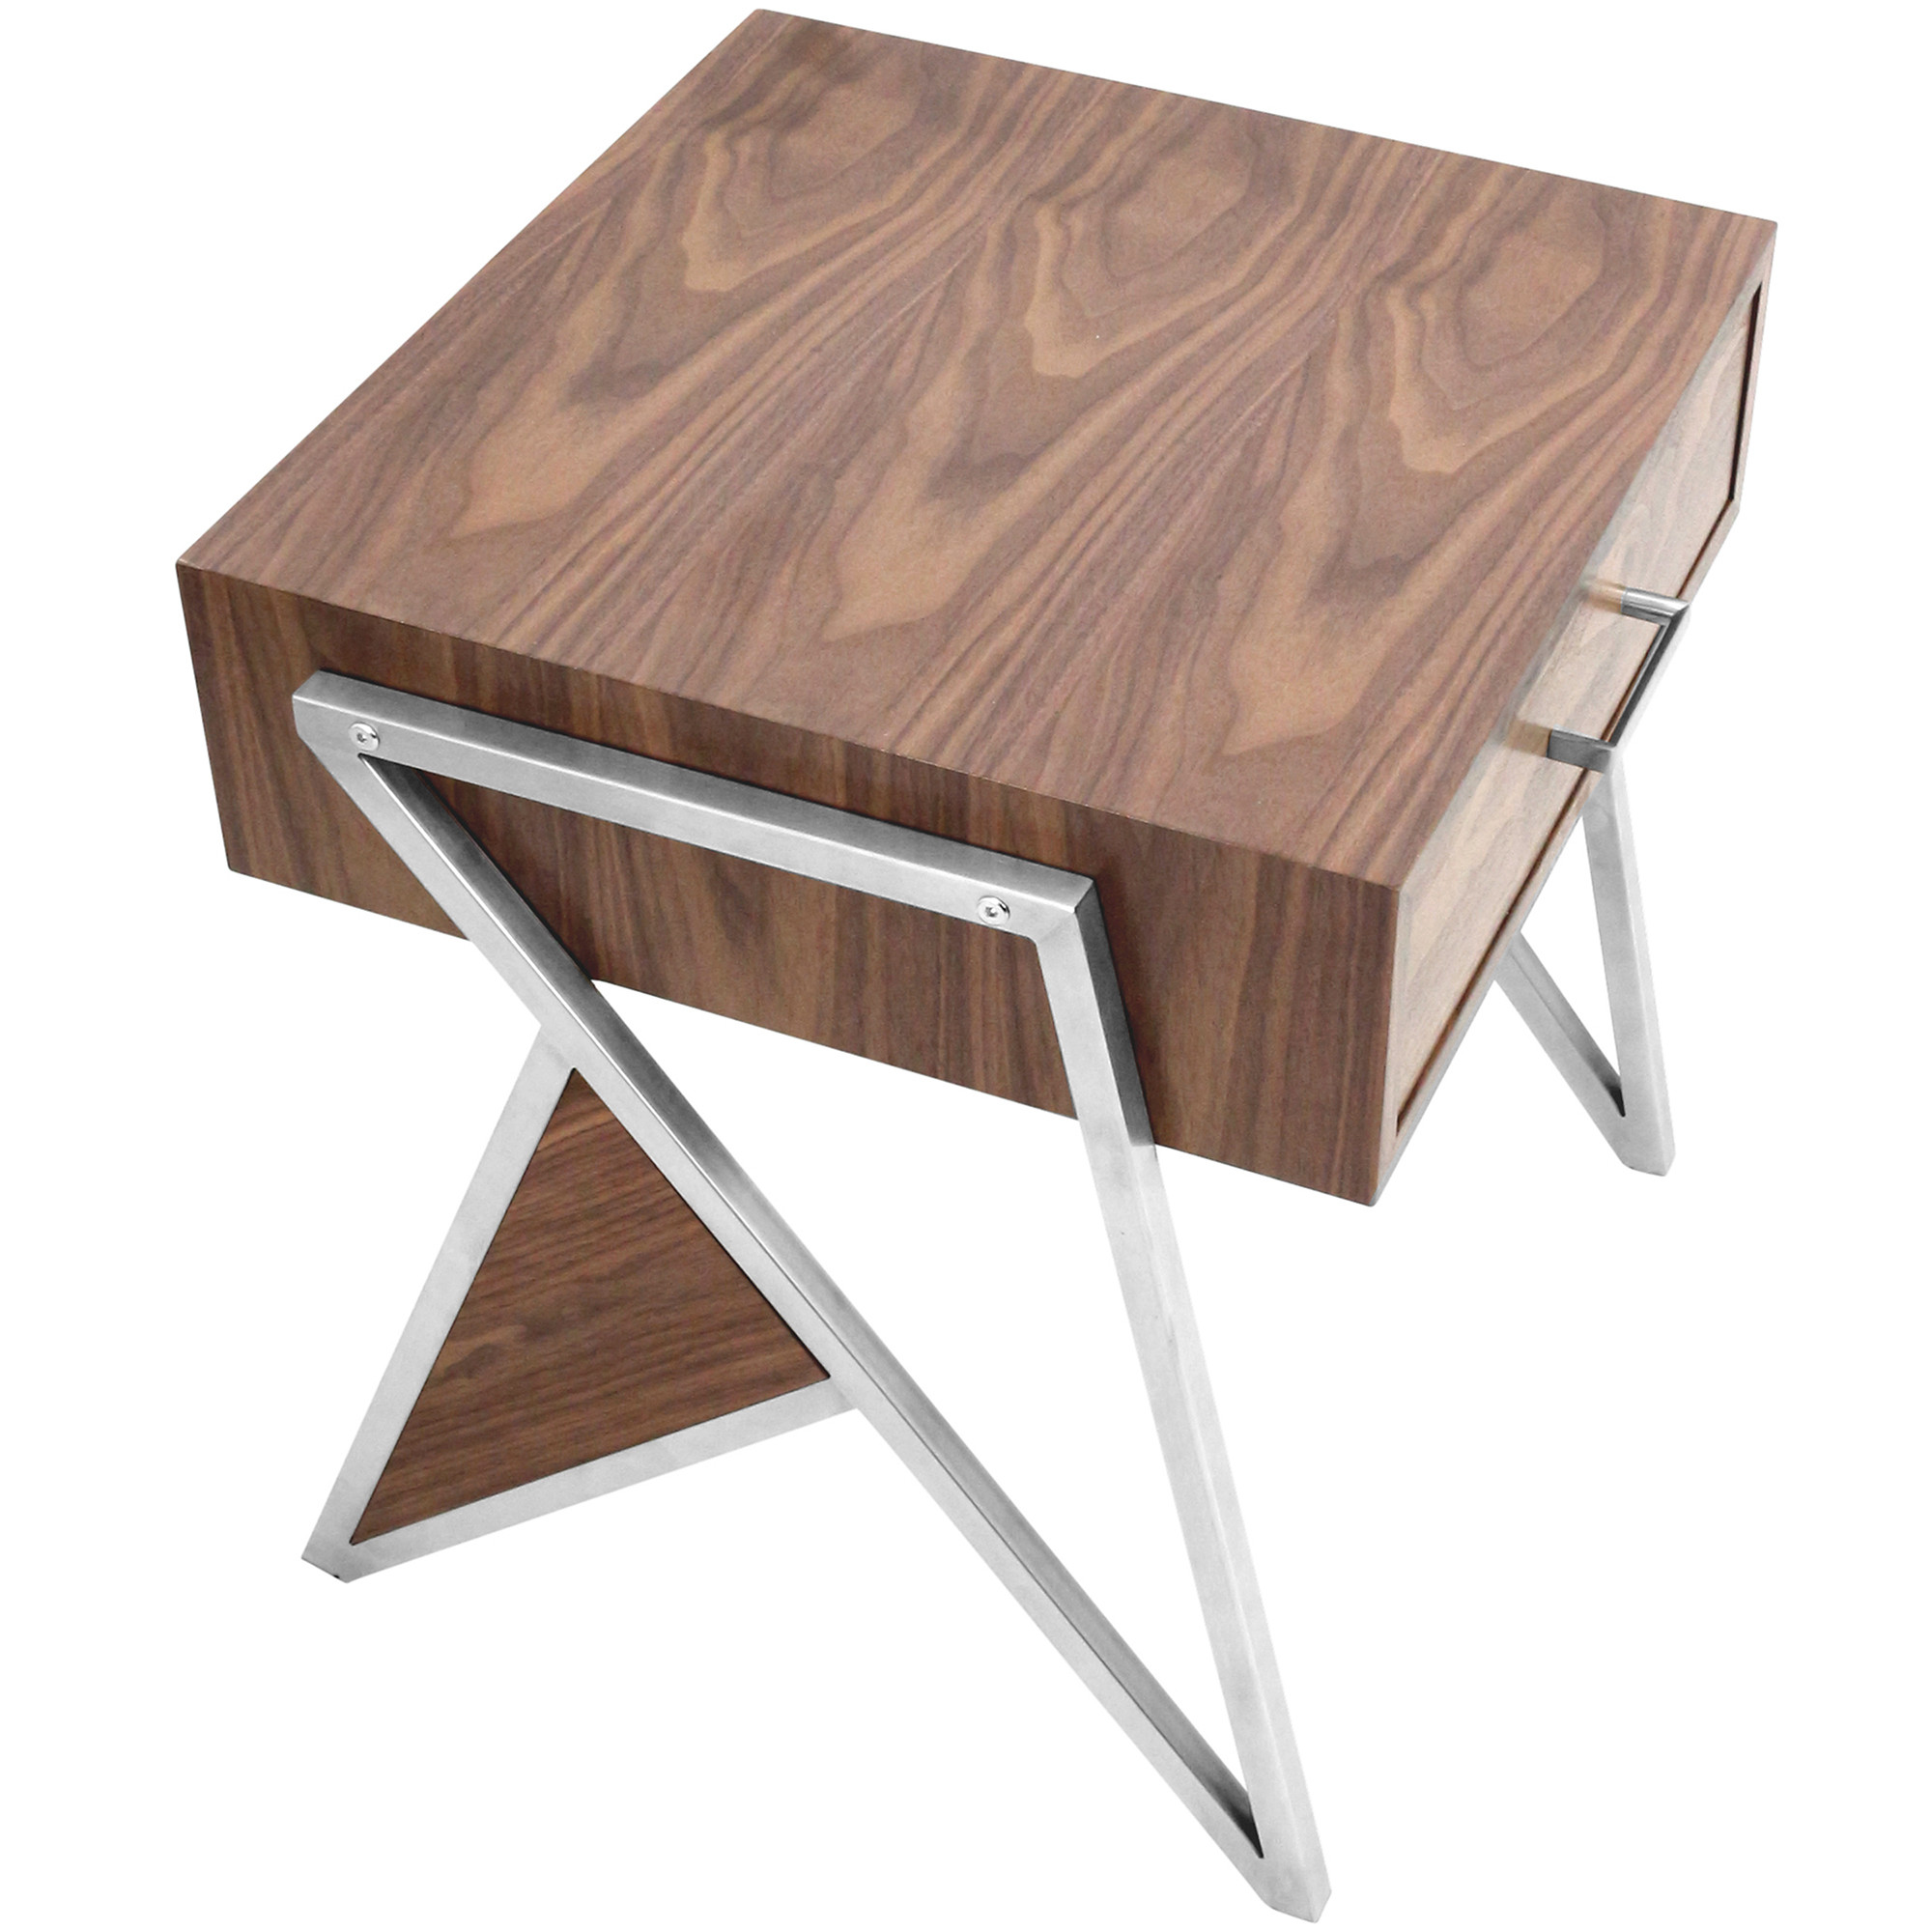 Tetra End Table - LumiSource - Stylish Decor at Affordable